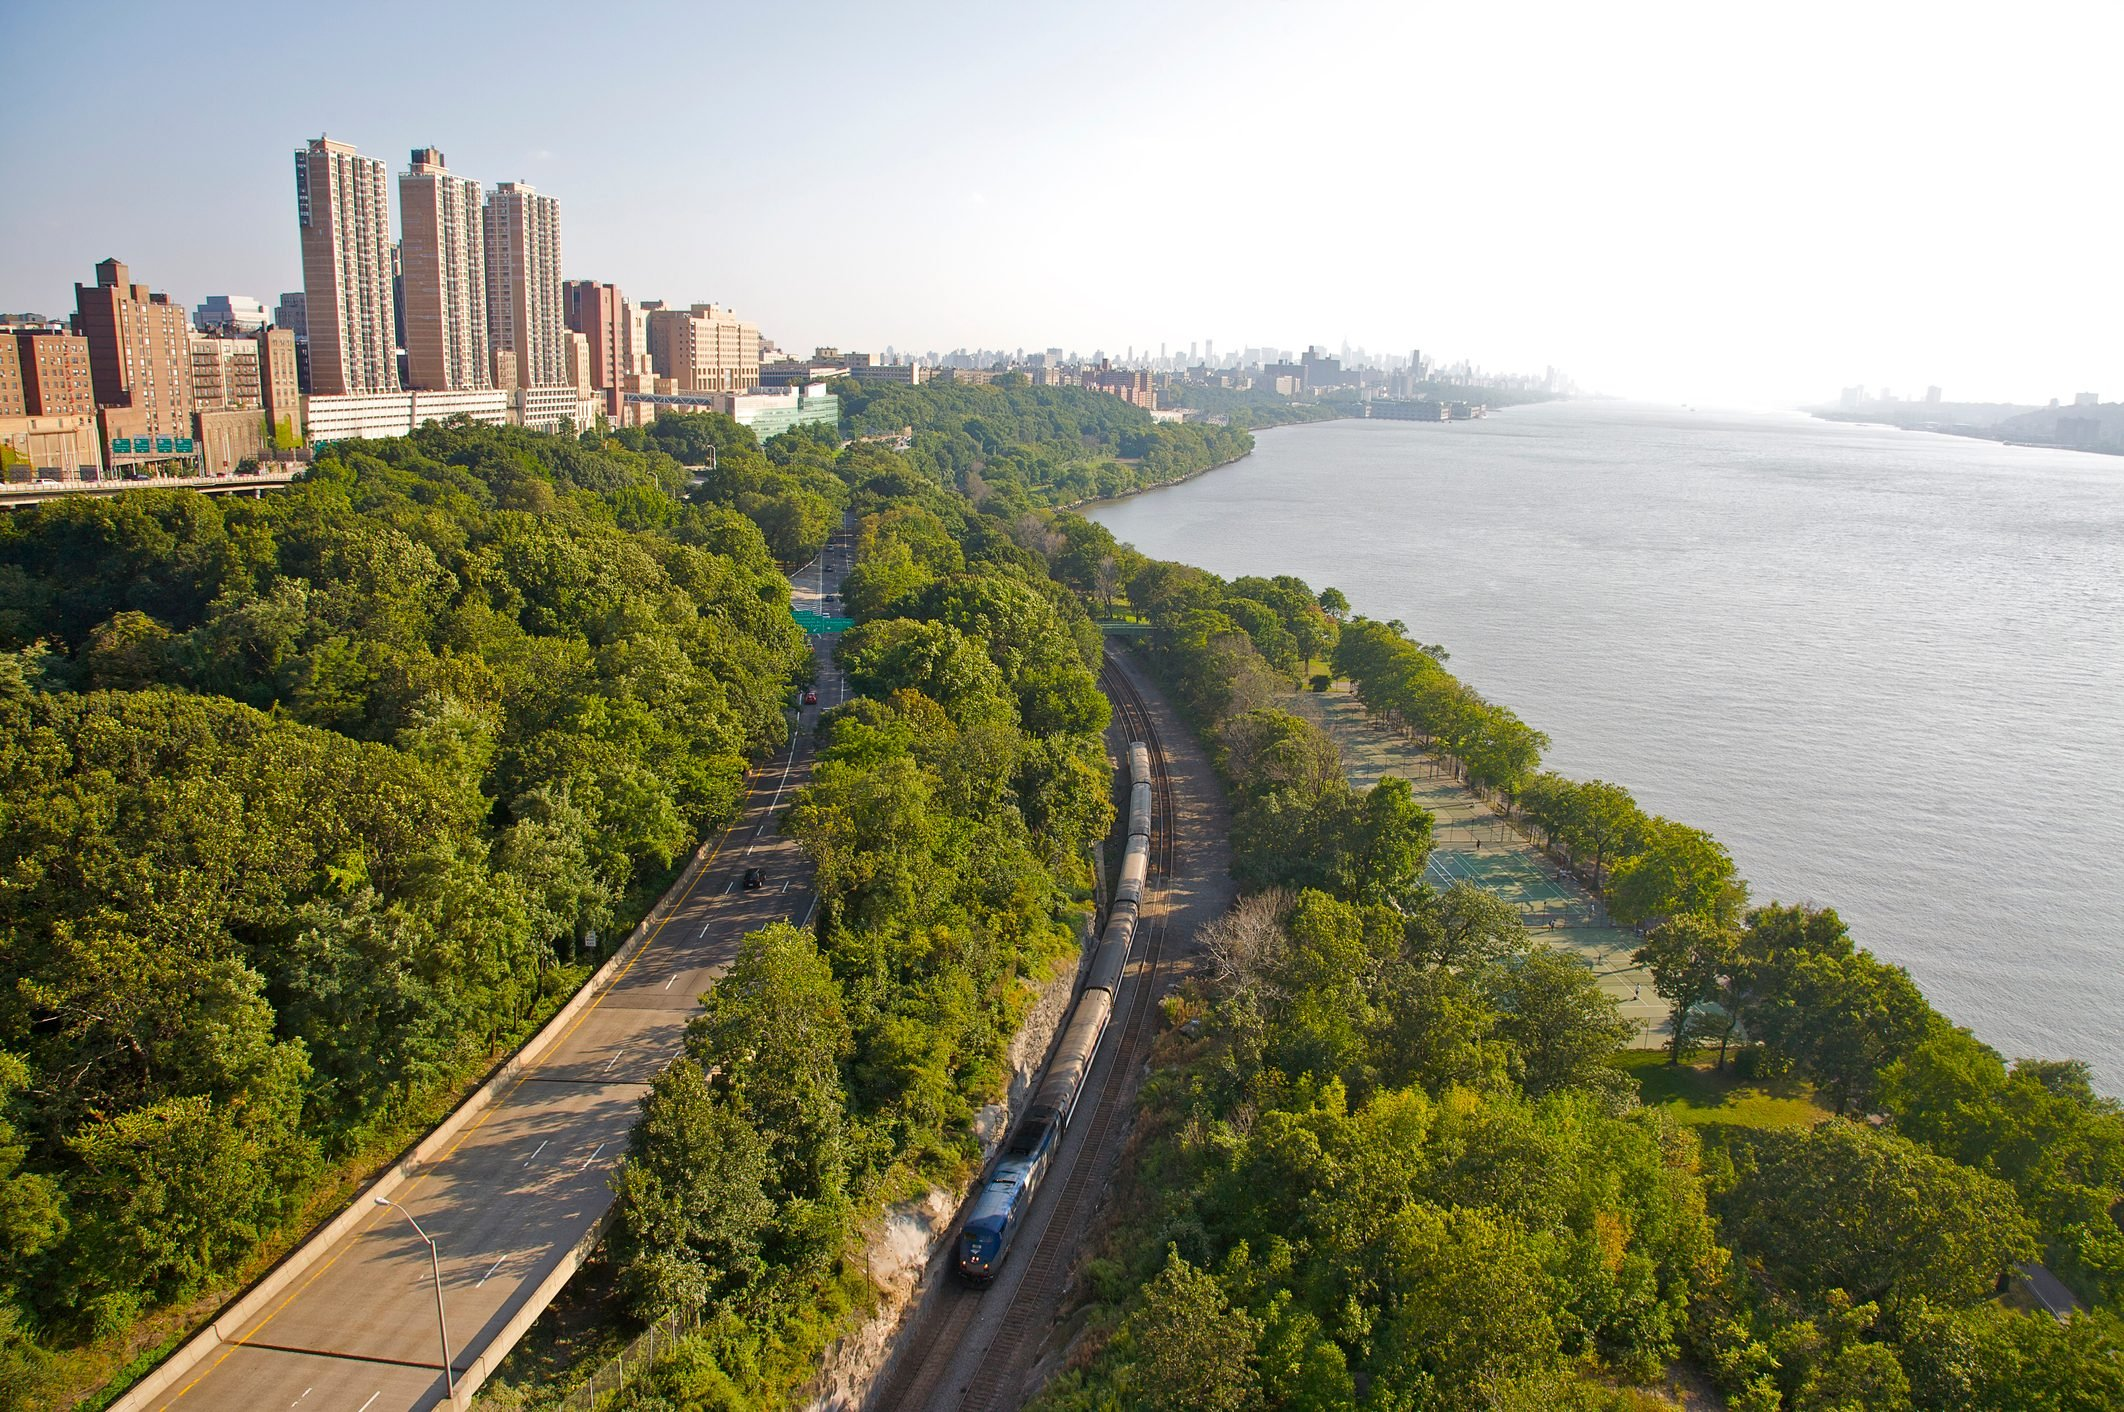 Aerial view of Upper West Side and Riverside Park, with Amtrak train below, from George Washington Bridge, New York, NY, U.S.A.